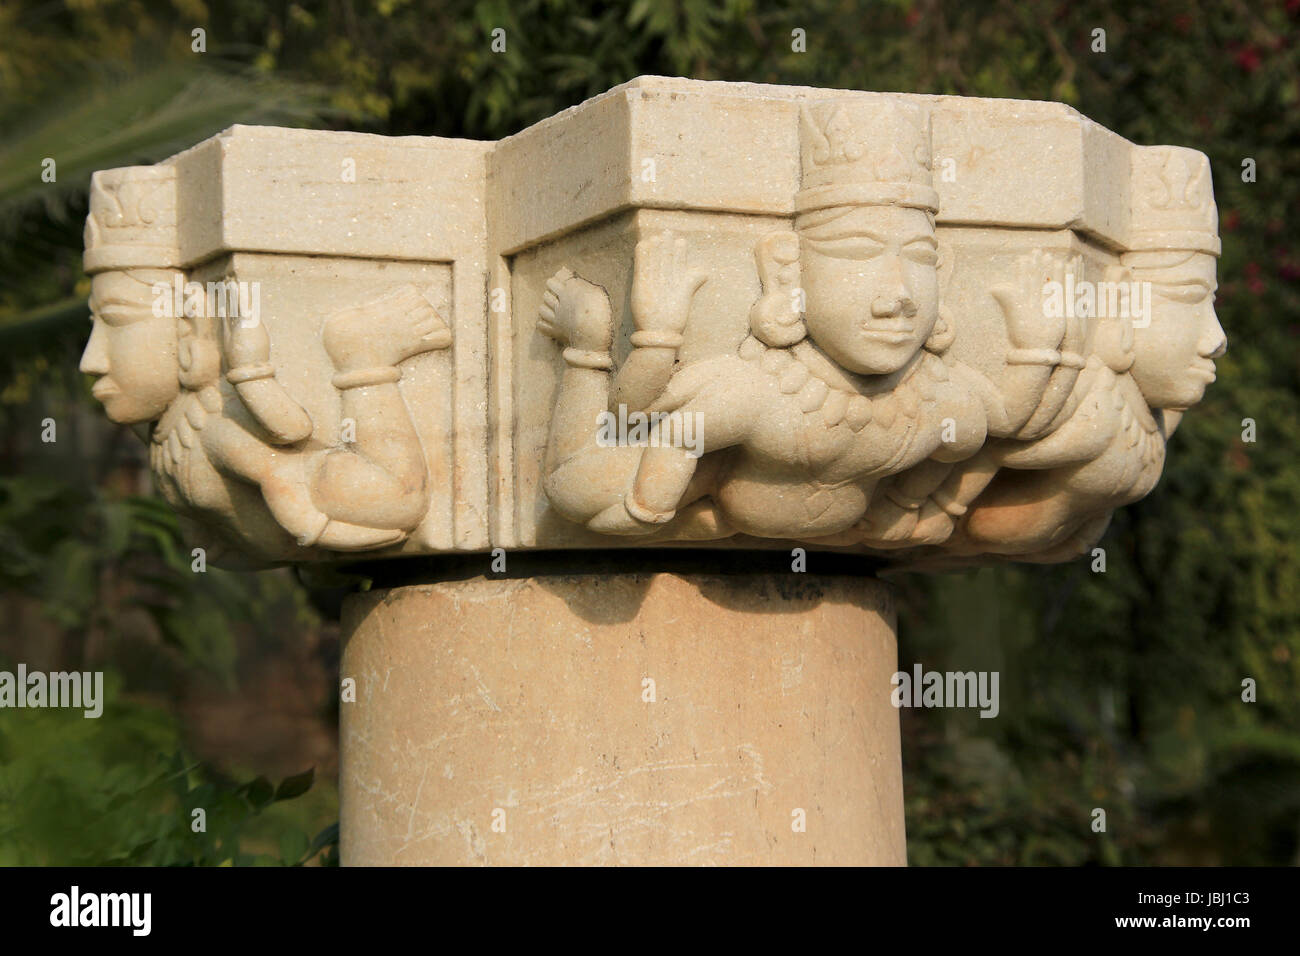 Interesting carving of figures on head of pillar near Pratap Smarak on Moti Magri Hill in Udaipur, Gujarat, India, - Stock Image